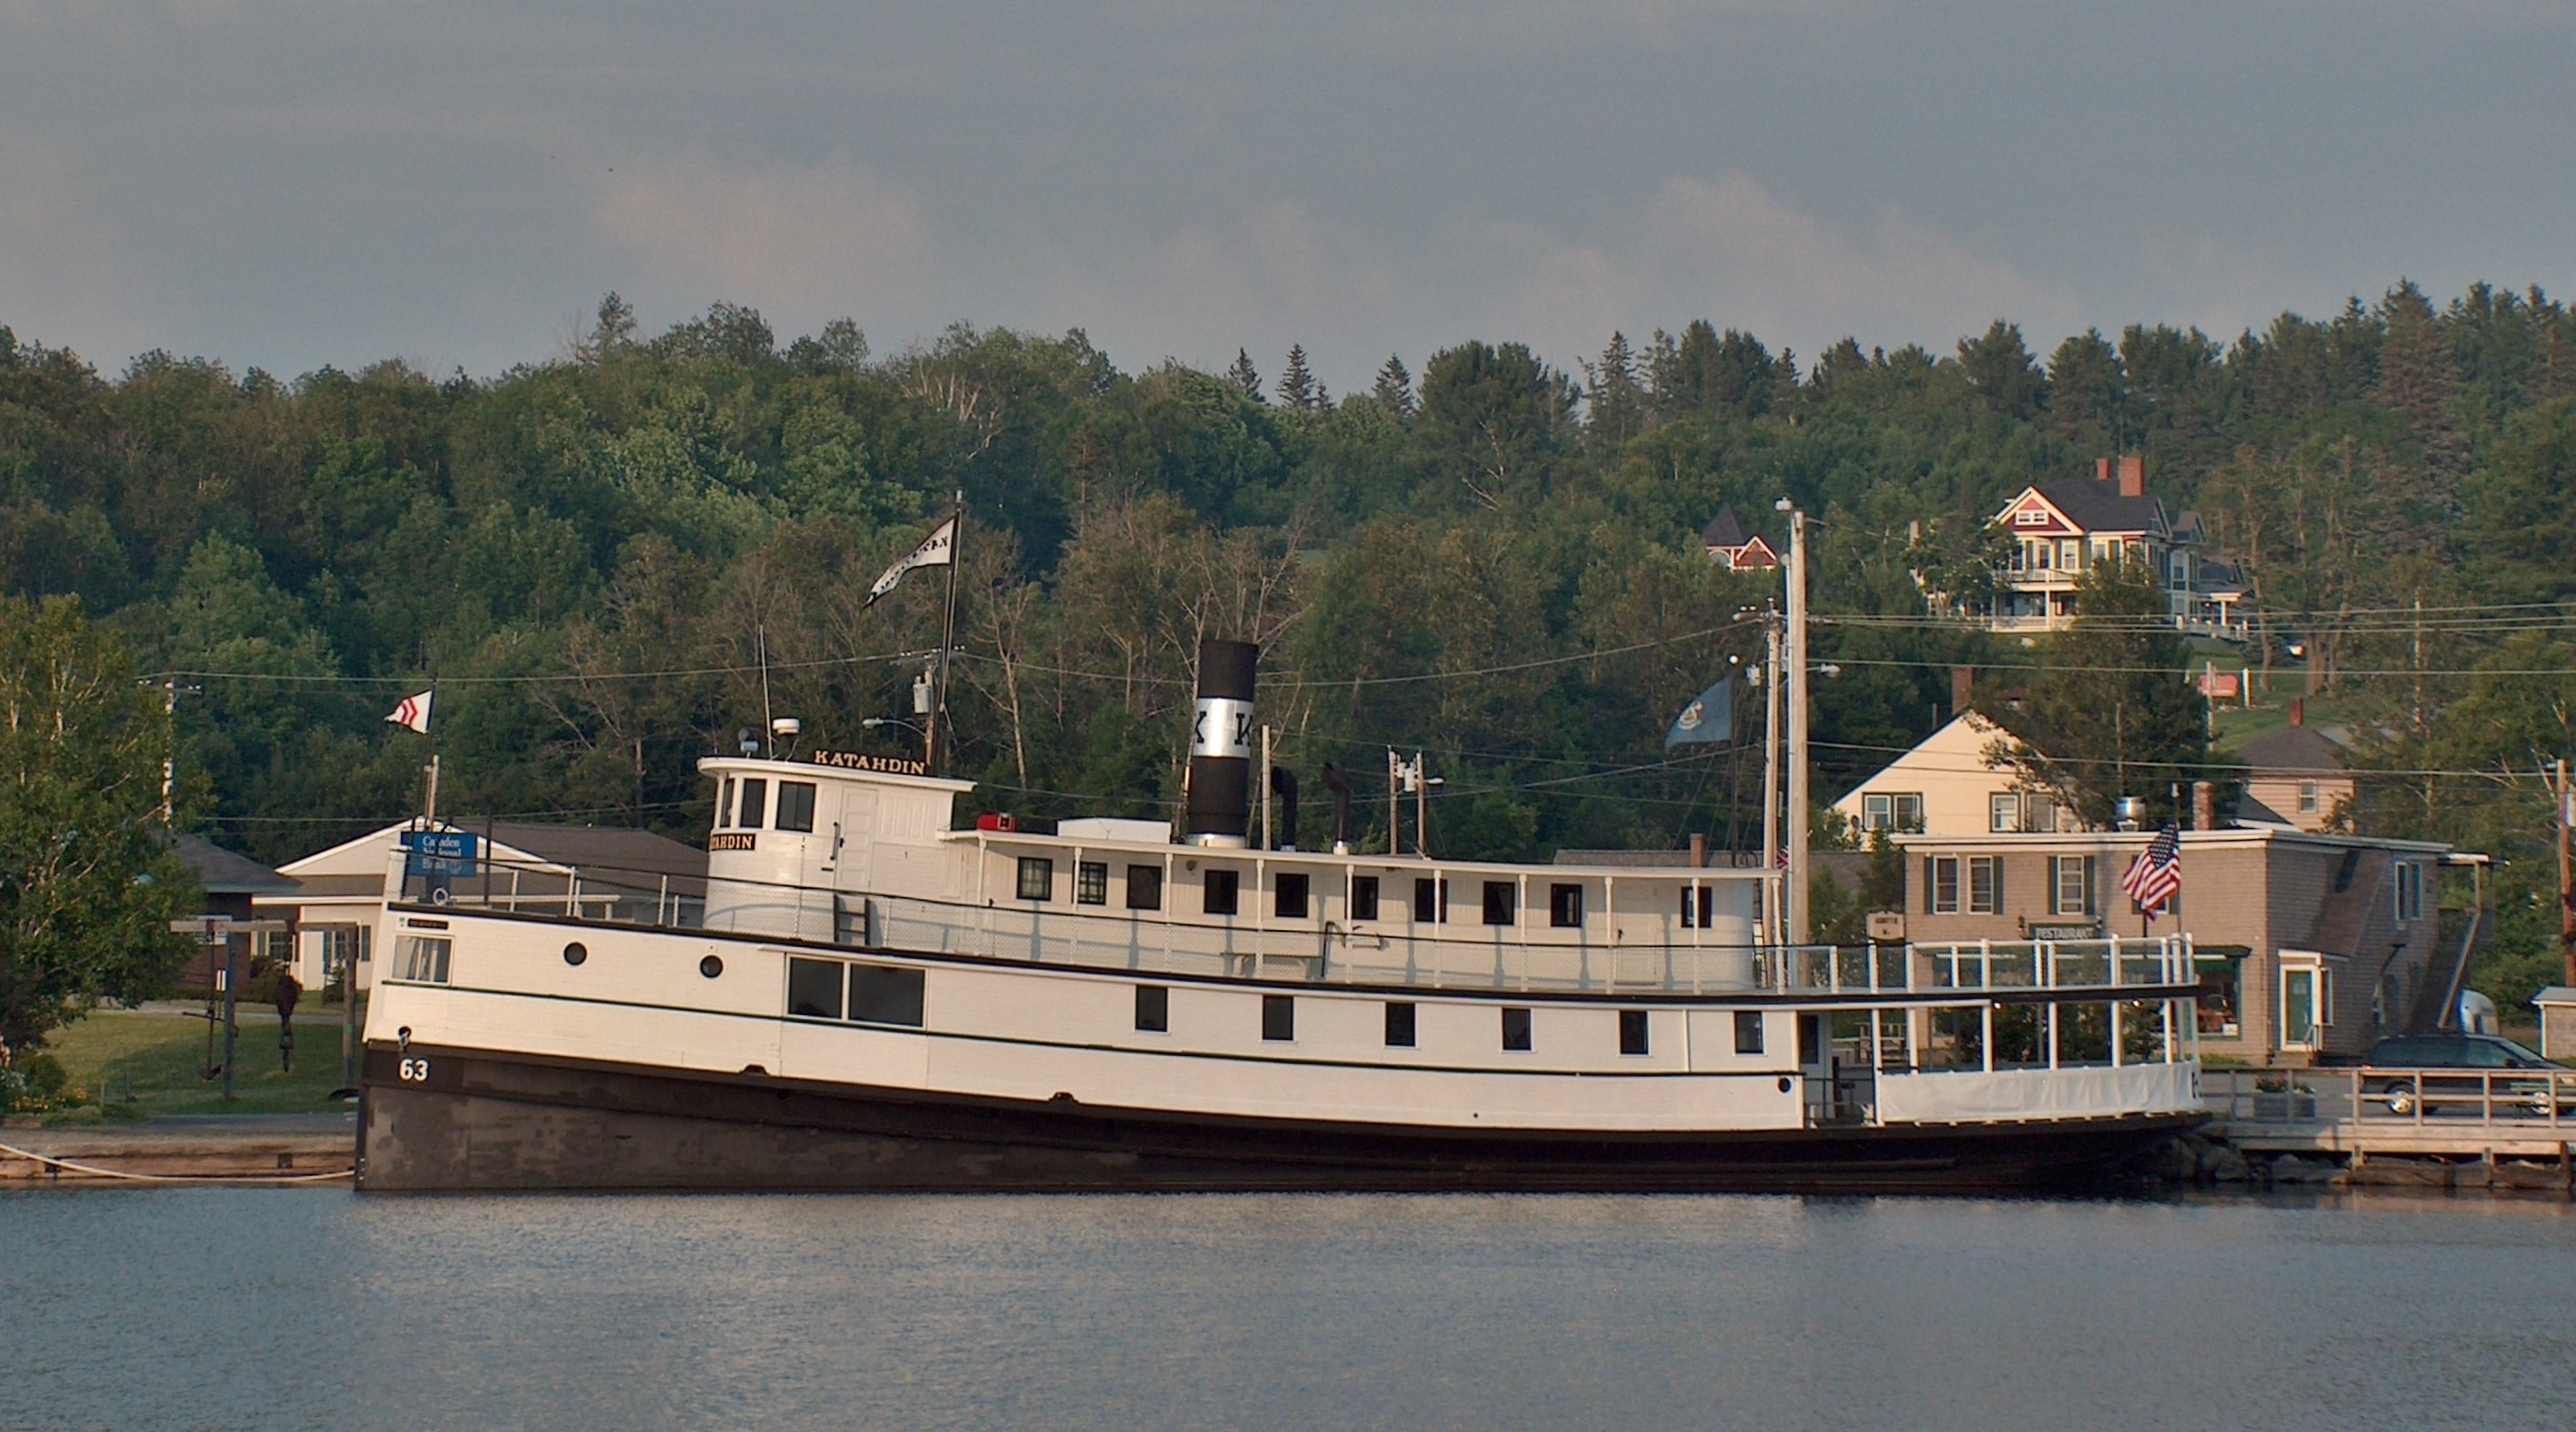 Steamship Katahdin tour boat docked at the Moosehead Marine Museum